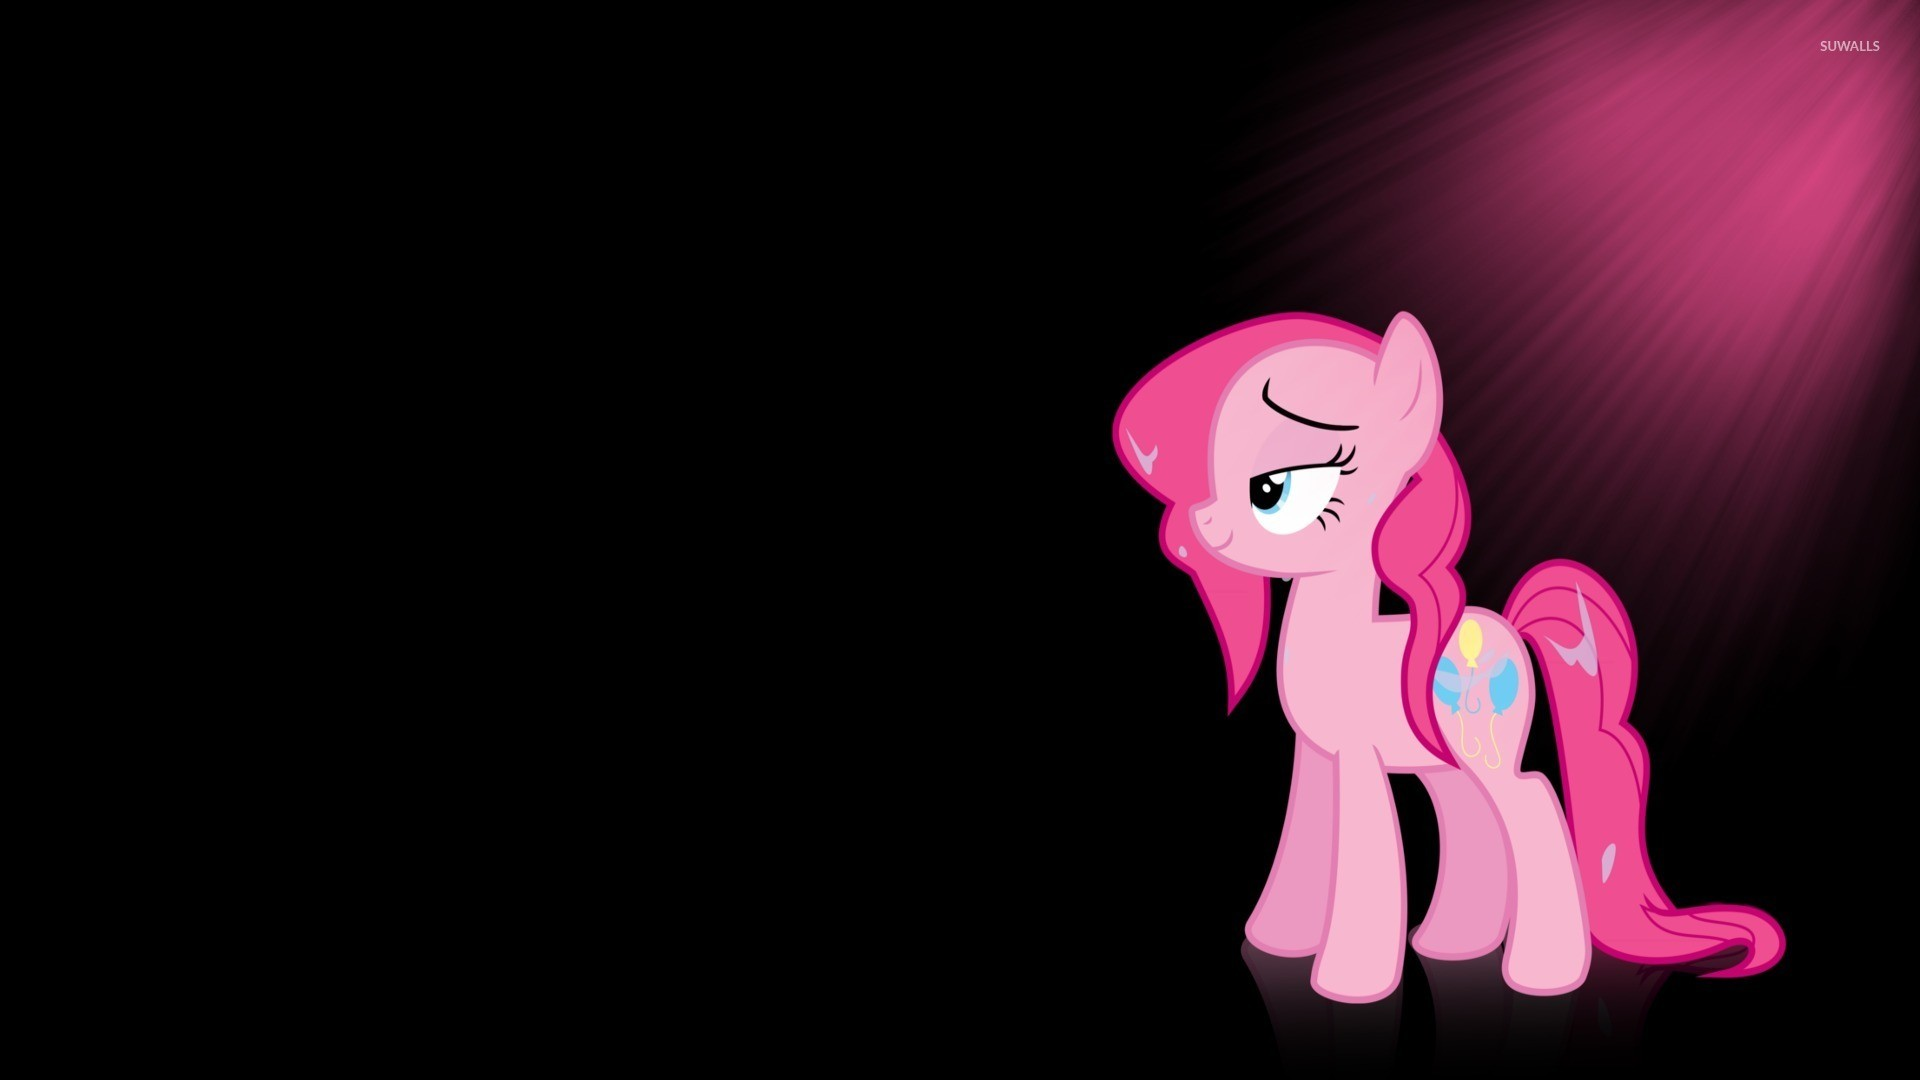 1920x1080 Sun light upon Pinkie Pie - My Little Pony wallpaper  jpg